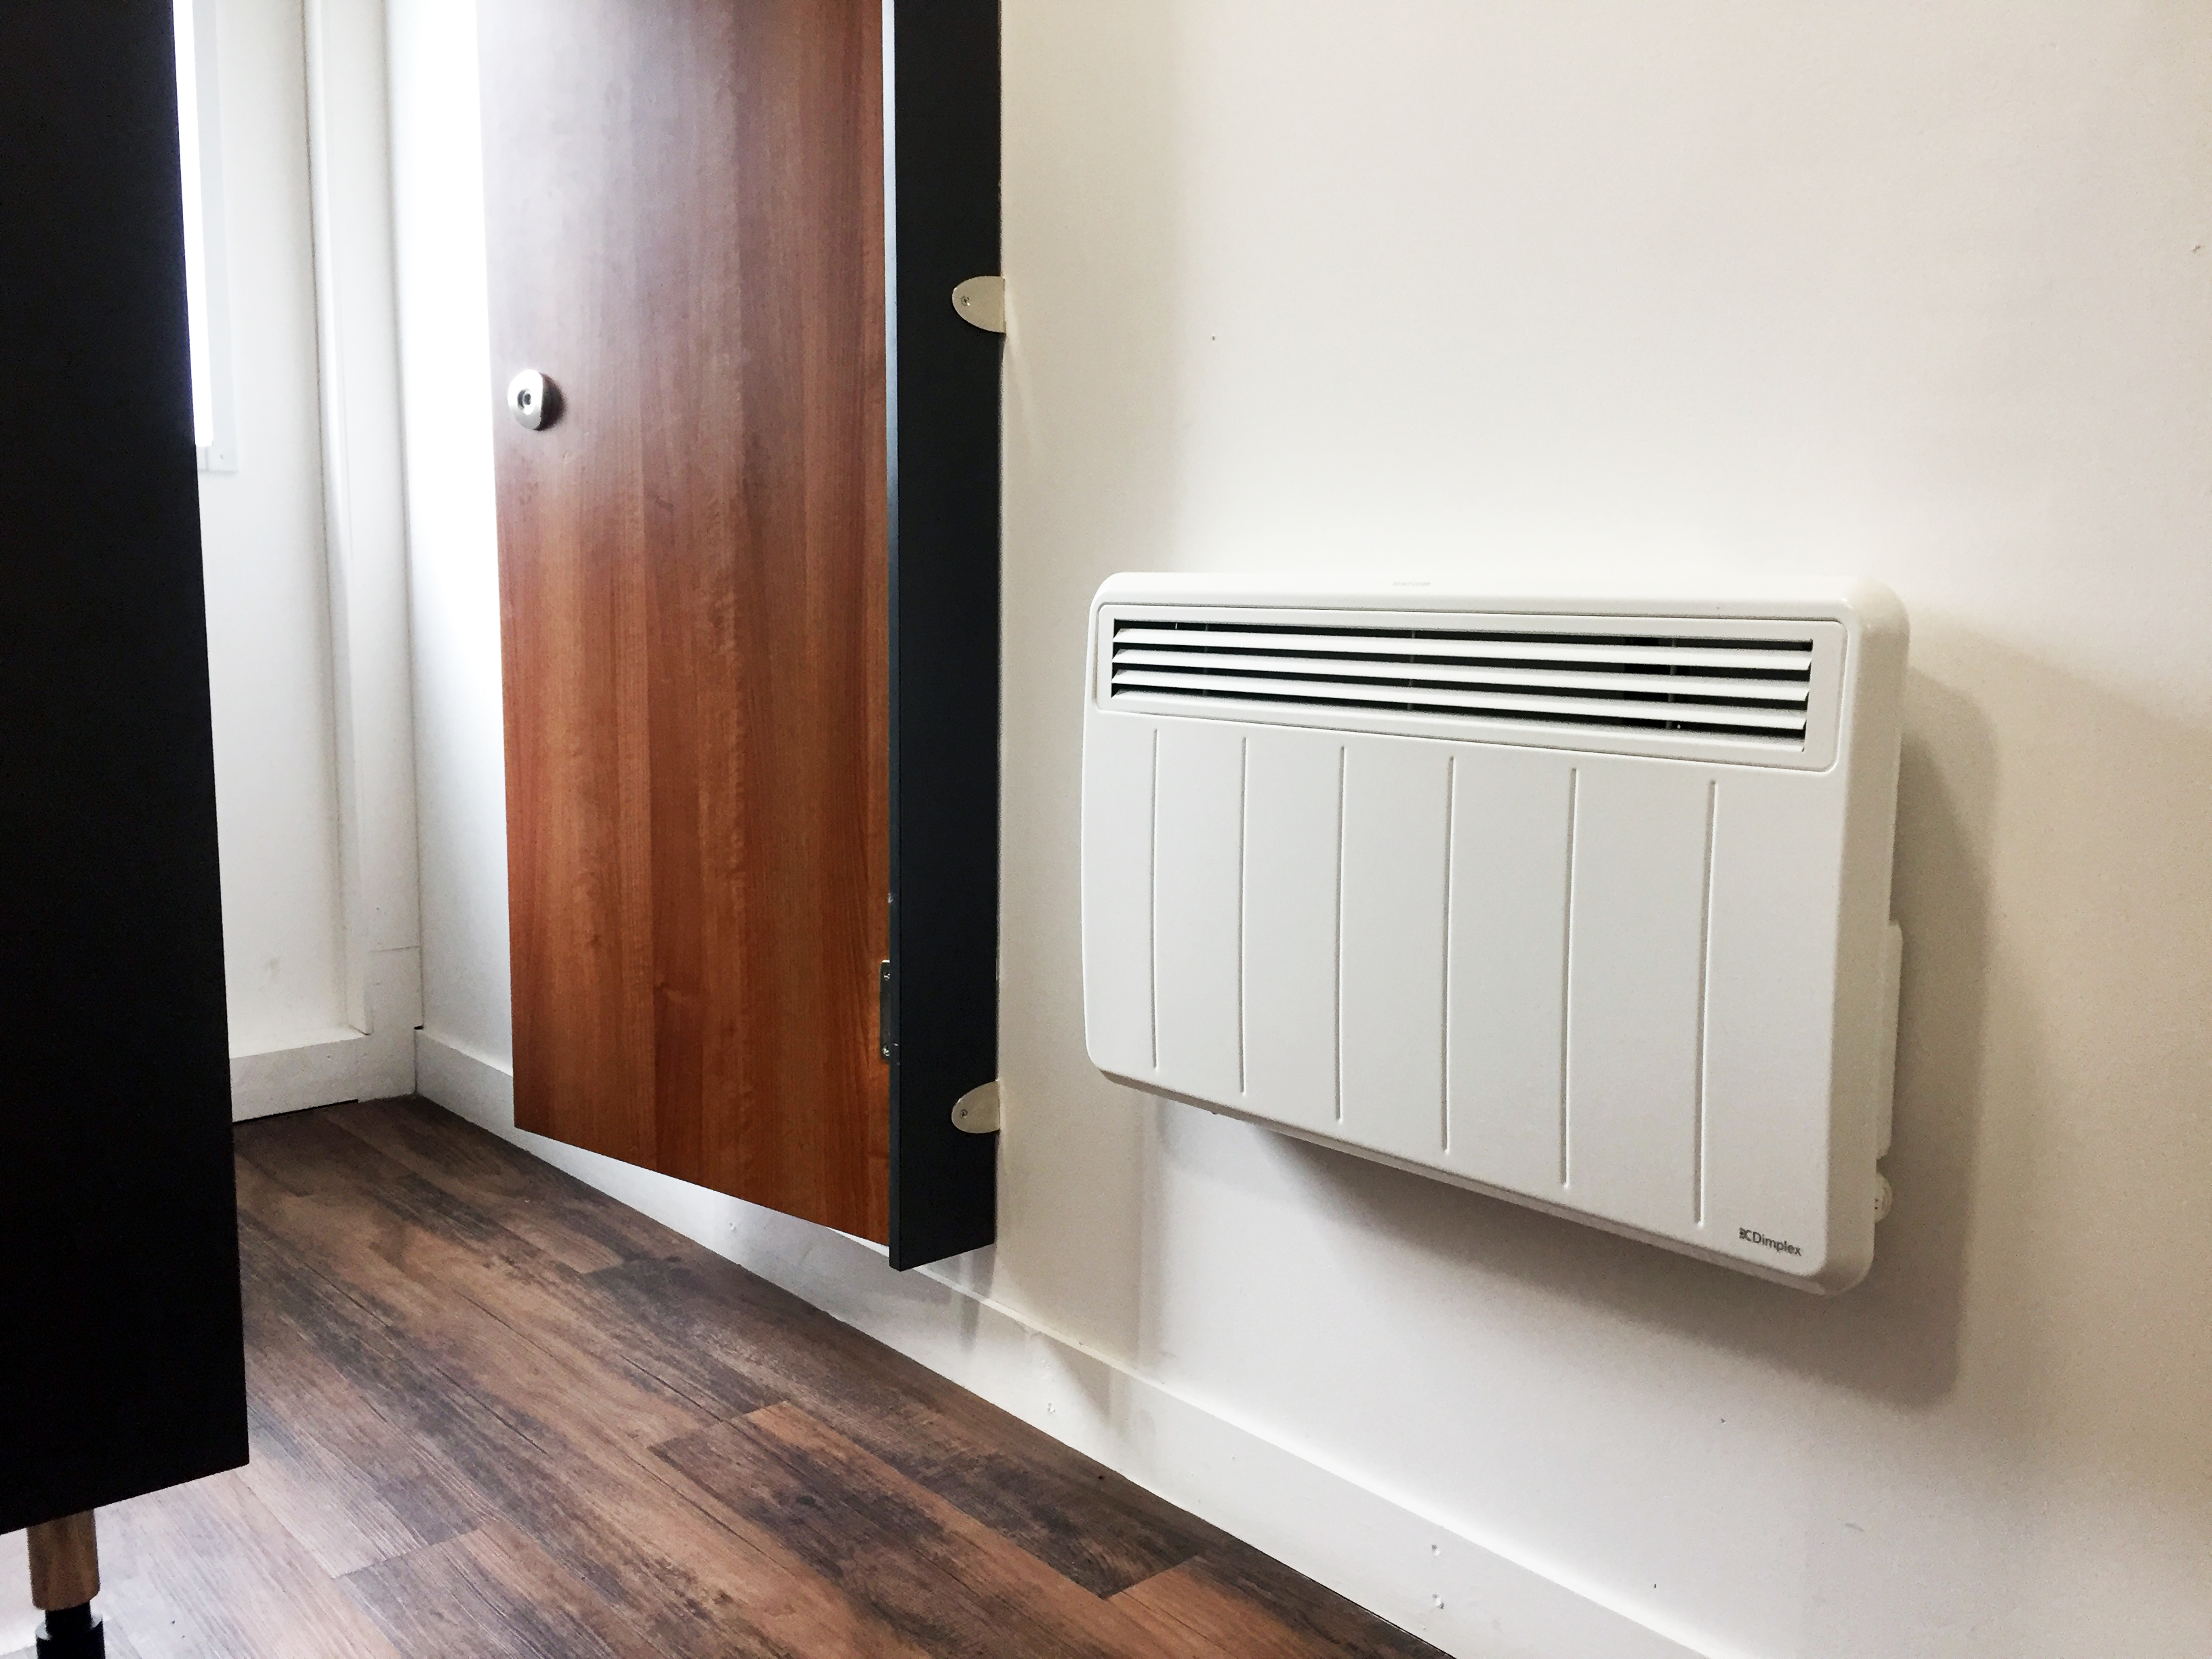 Dimplex PLXE electric panel heater in the Veterans' Garage toilets